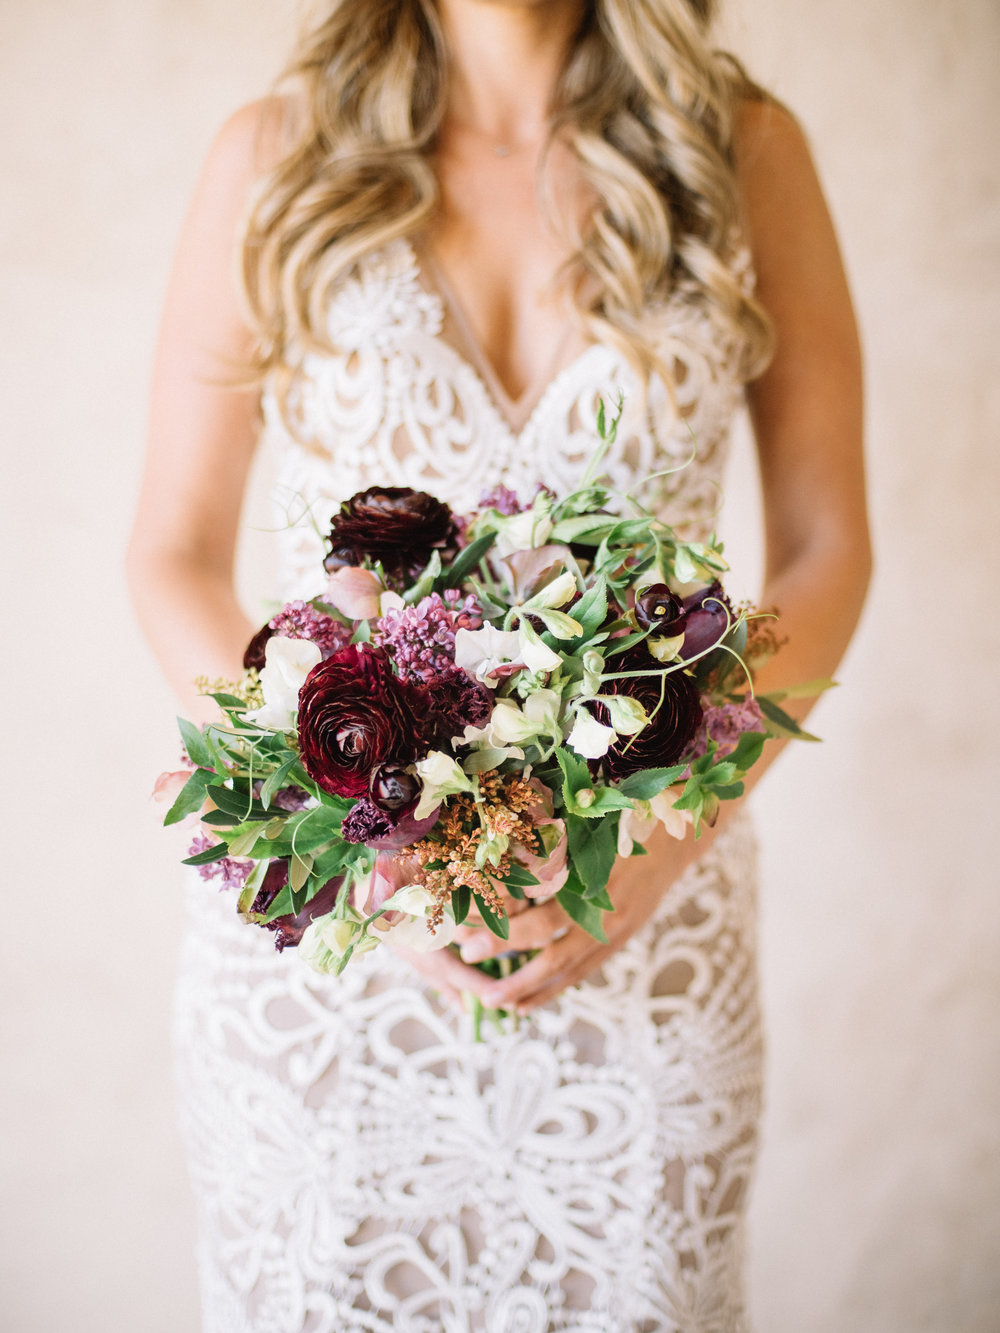 santa-barbara-elopement-elope-pop-up-wedding-planning-planner-coordinator-sunstone-villa-winery-vineyard-tuscan-olive-purple-ynez-garland-brass (4).jpg